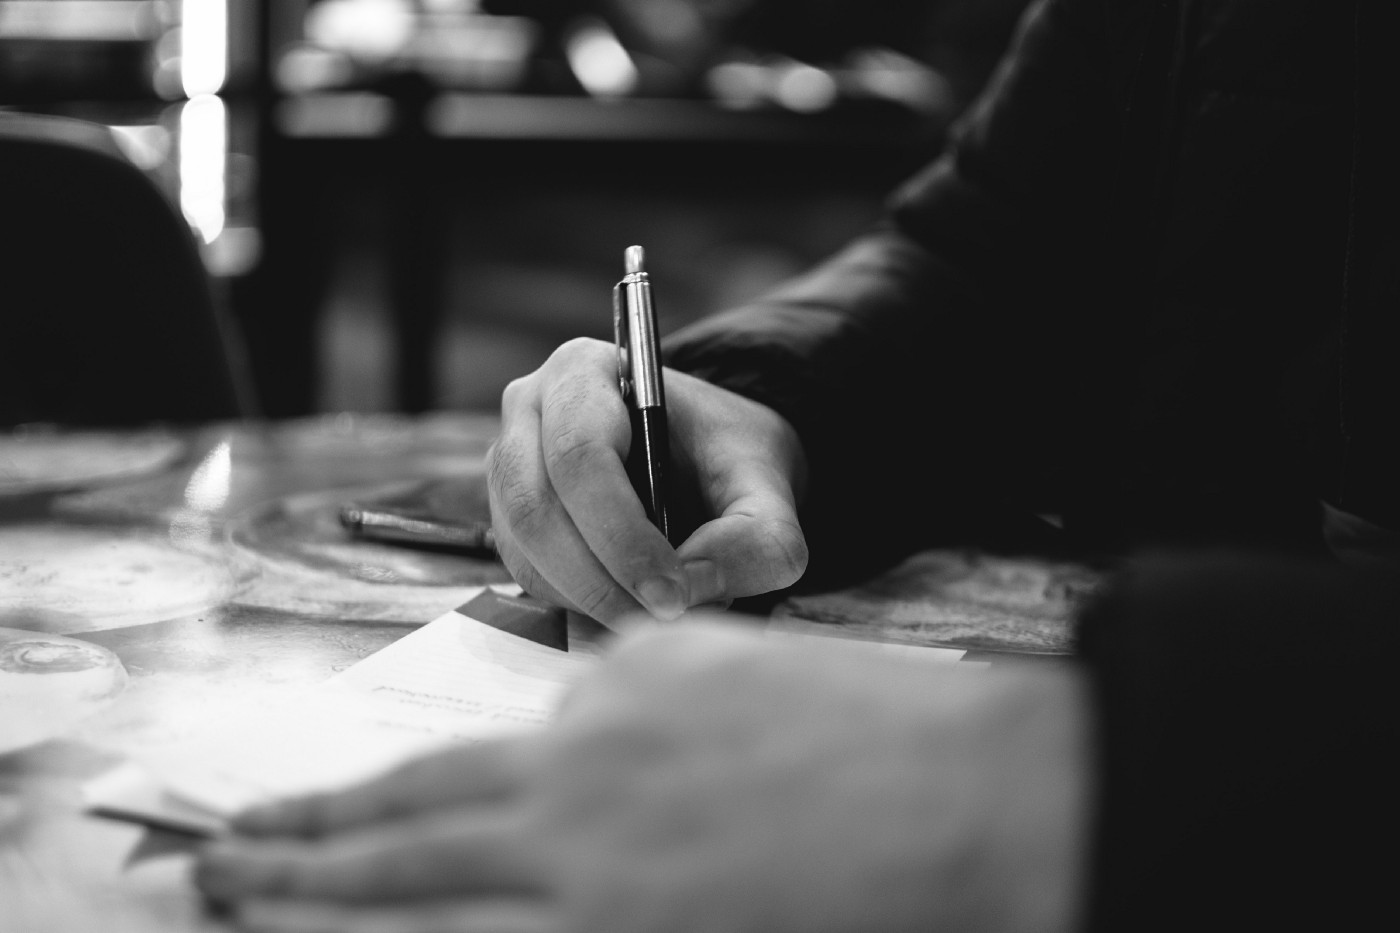 Man's hand on a notebook and table, in black-and-white.